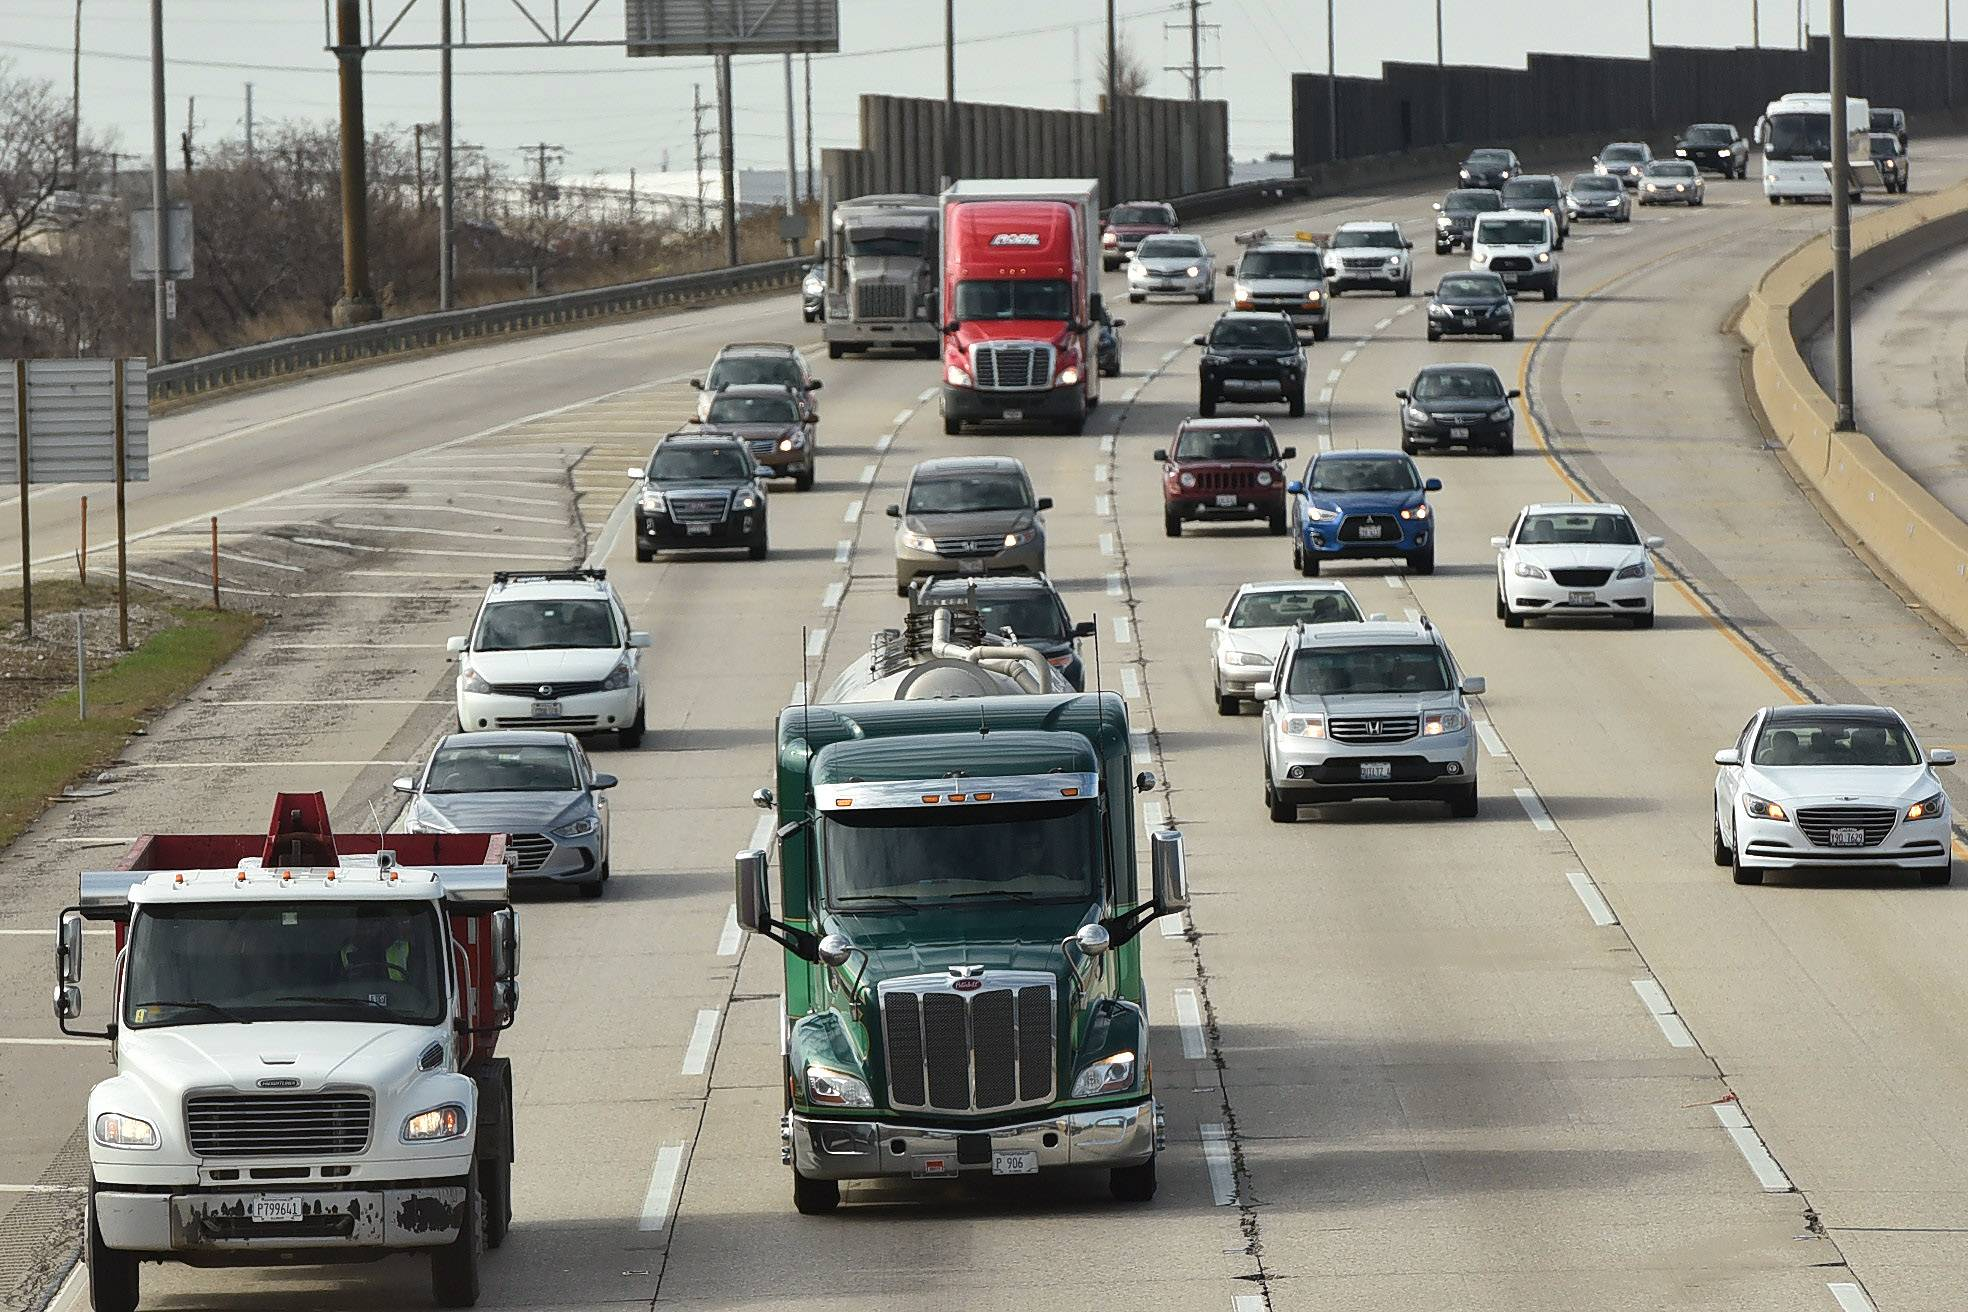 The Tri-State tollway will get a new lane in each direction plus interchange improvements.